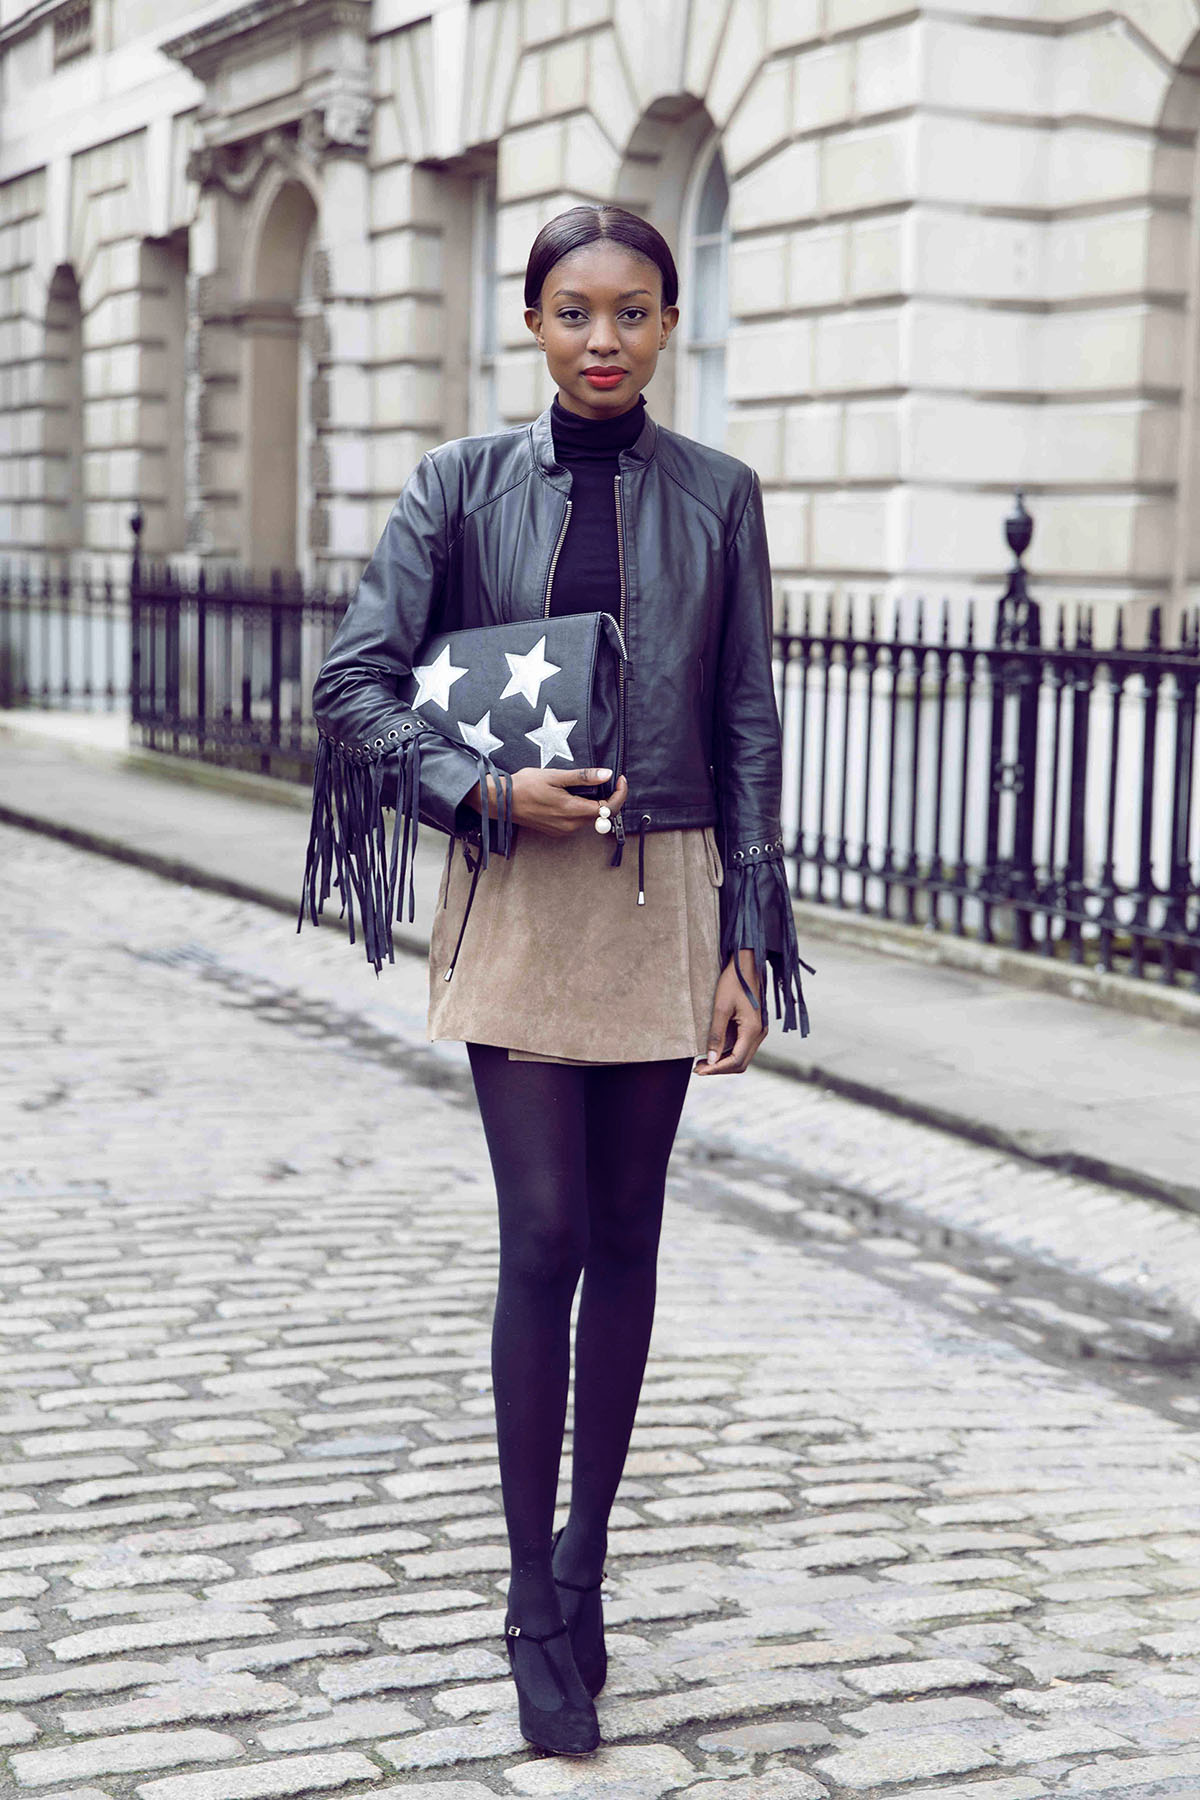 Suede Fashion Trend: Natasha Ndlovu is wearing a wrap skirt in suede with ties from Asos